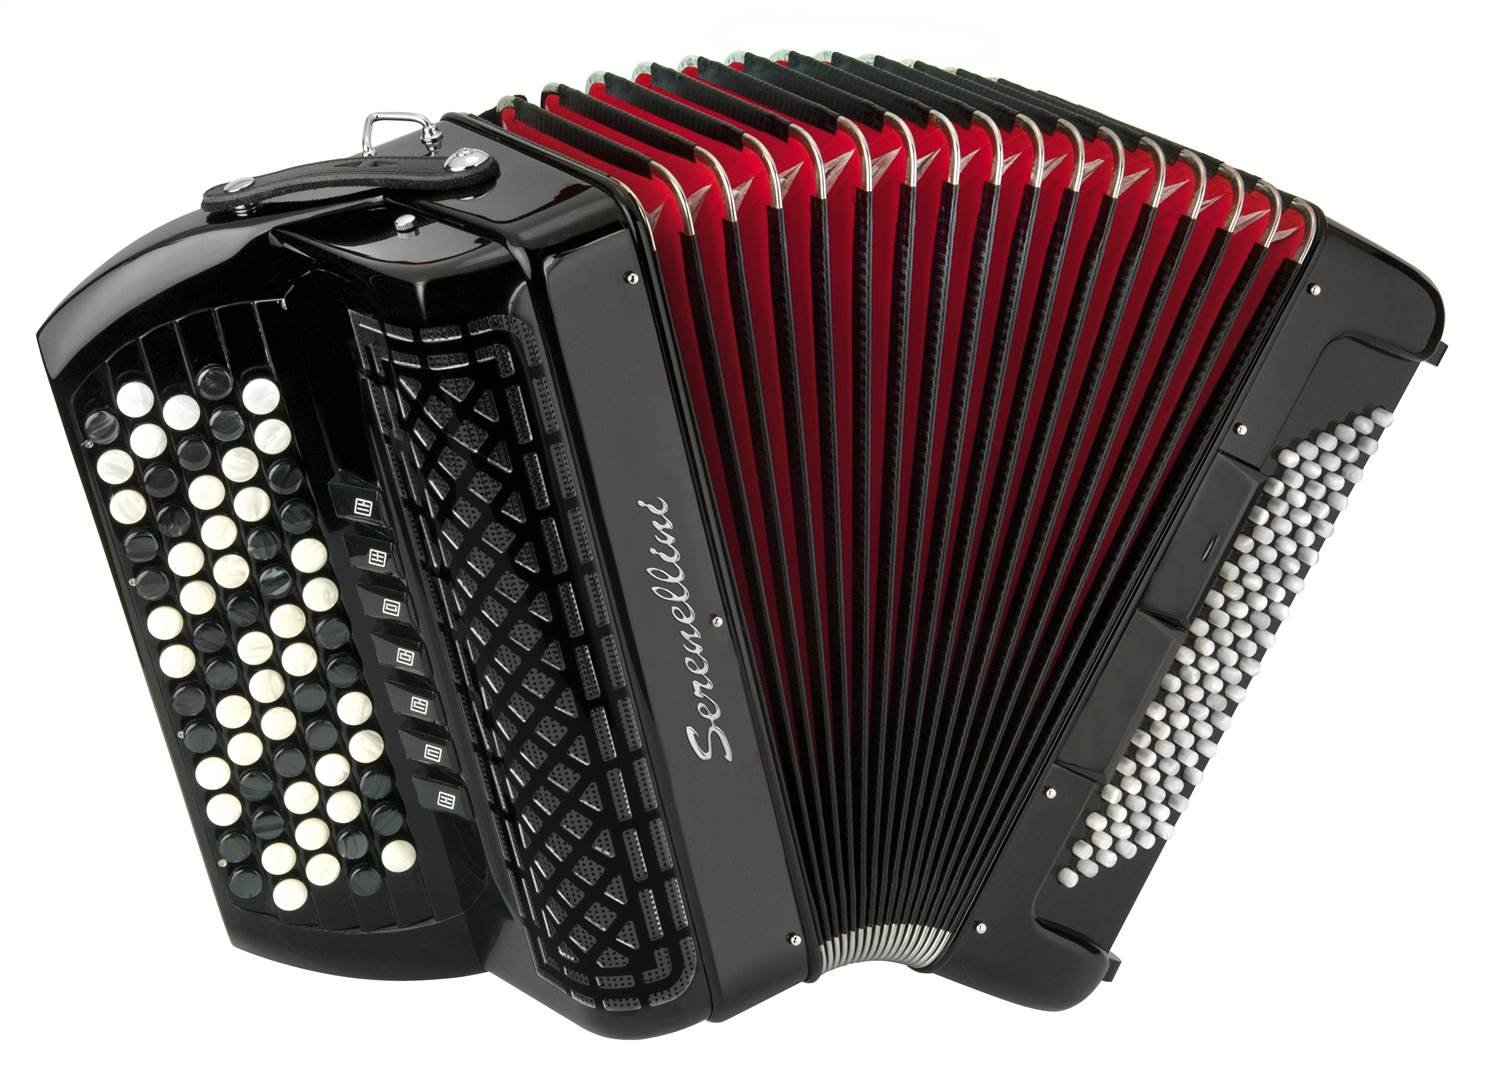 Serenellini 373 chromatic accordion